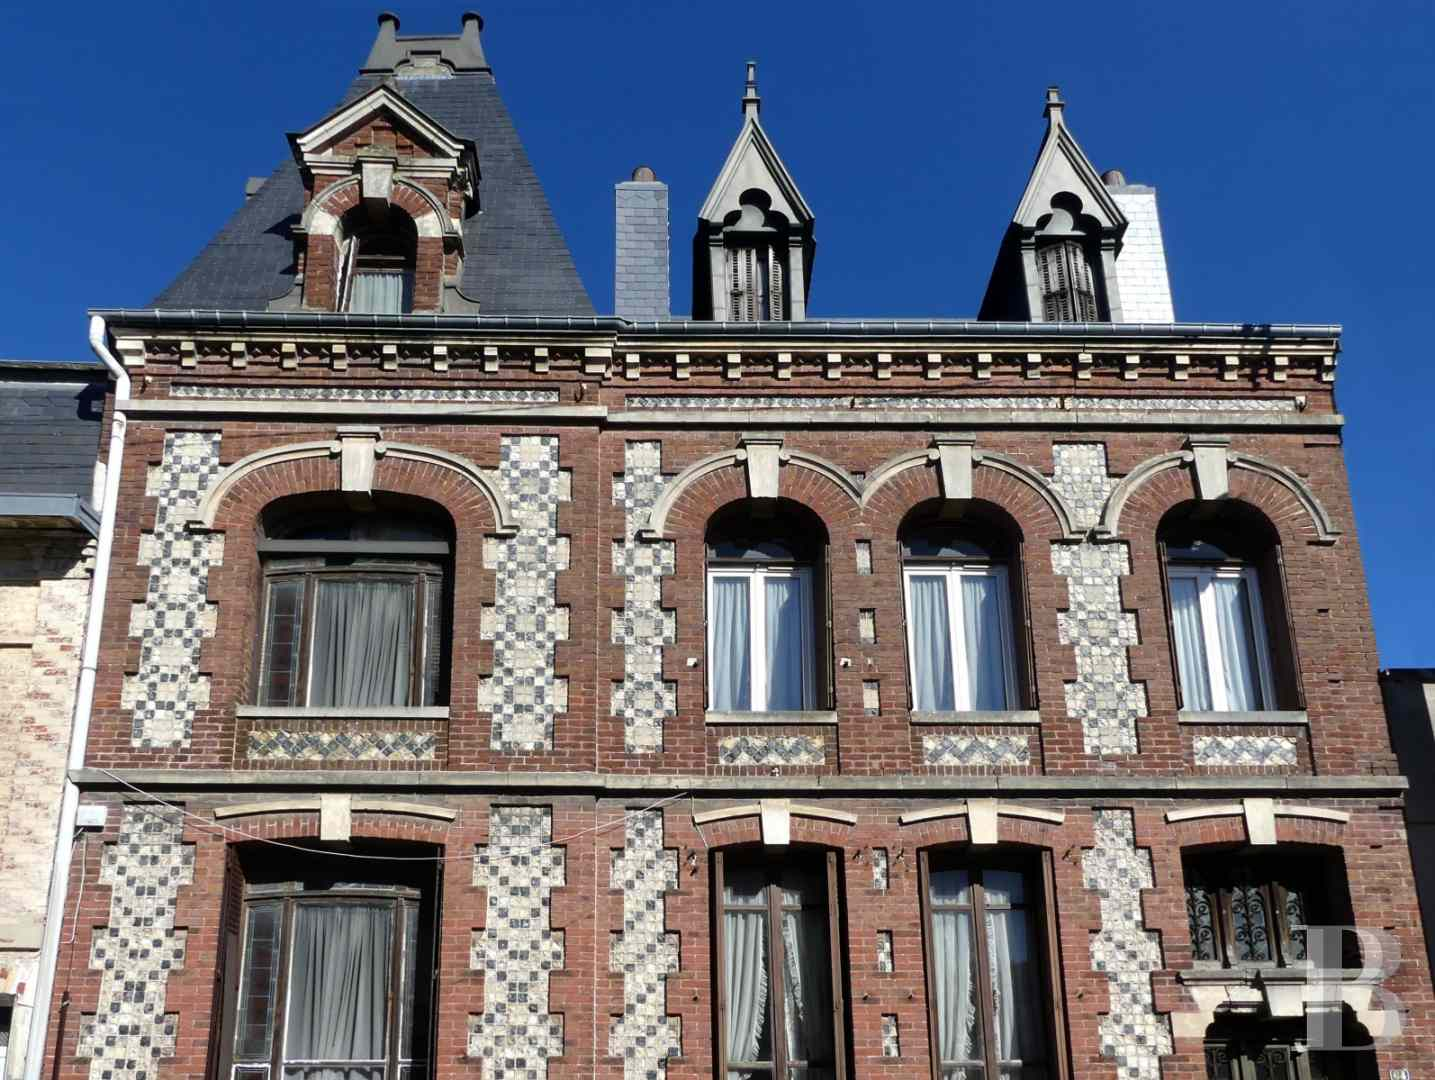 character properties France upper normandy character houses - 1 zoom